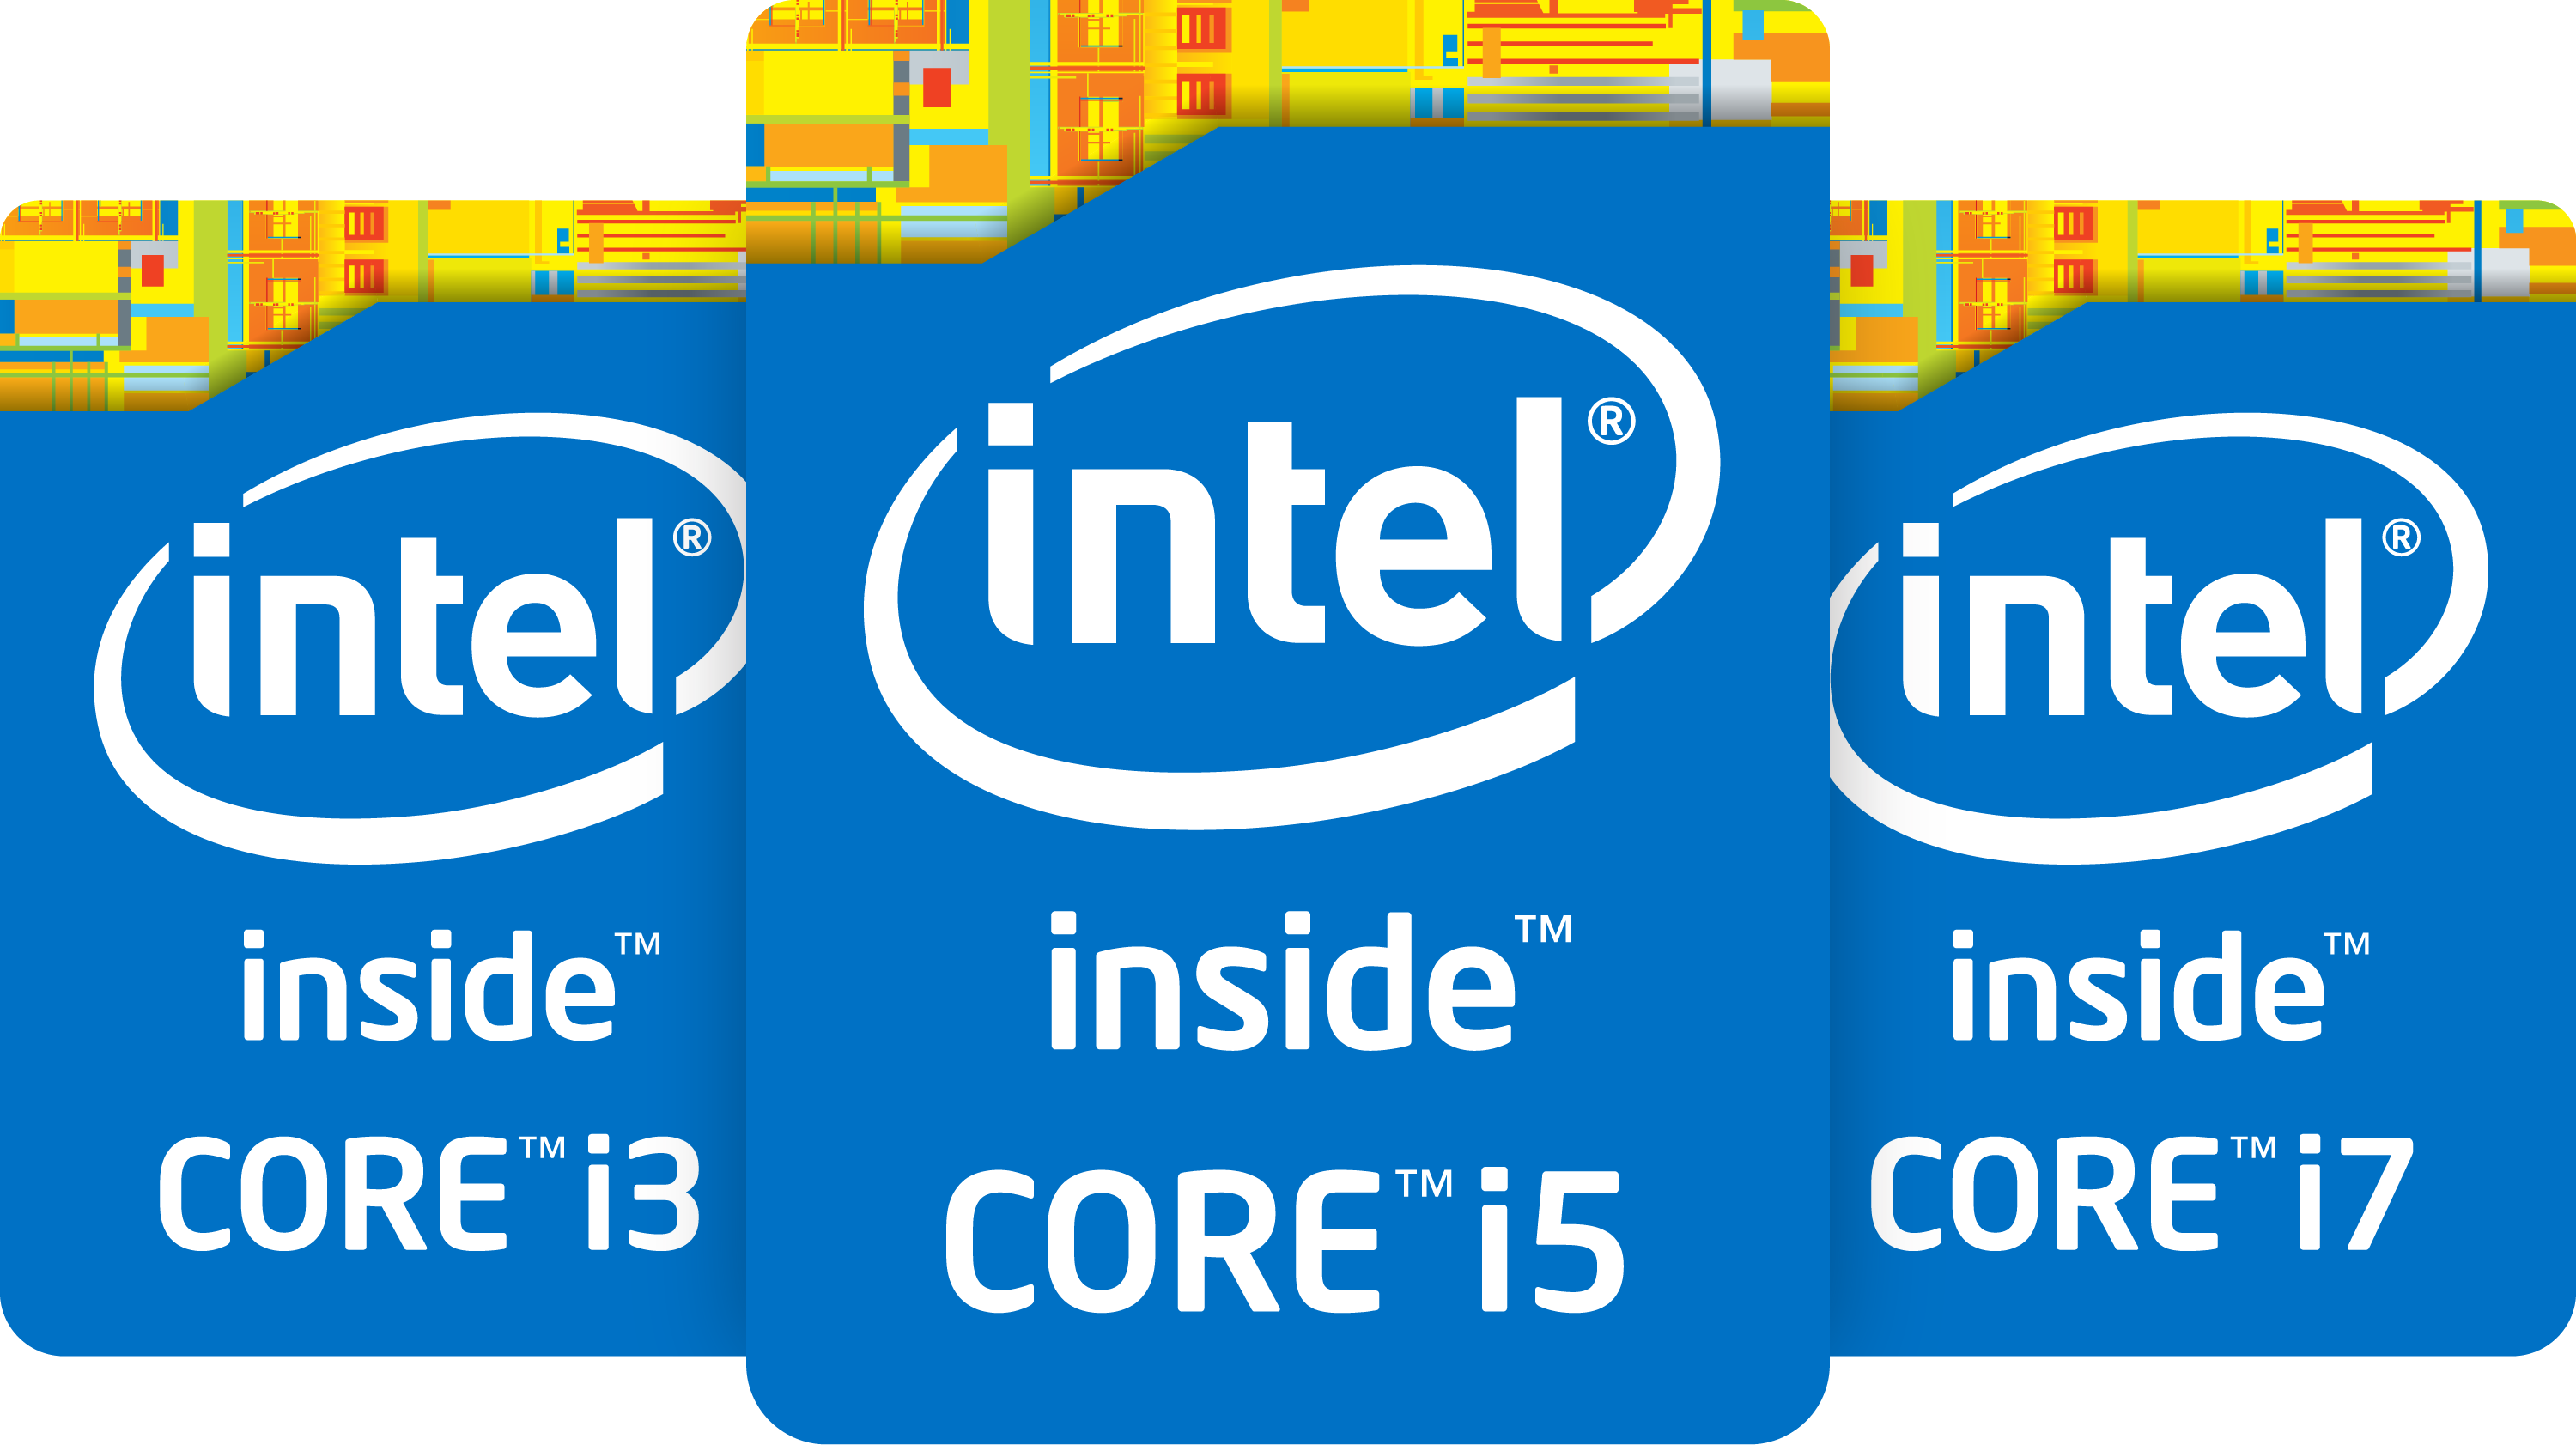 4th gen core processor badges stacked